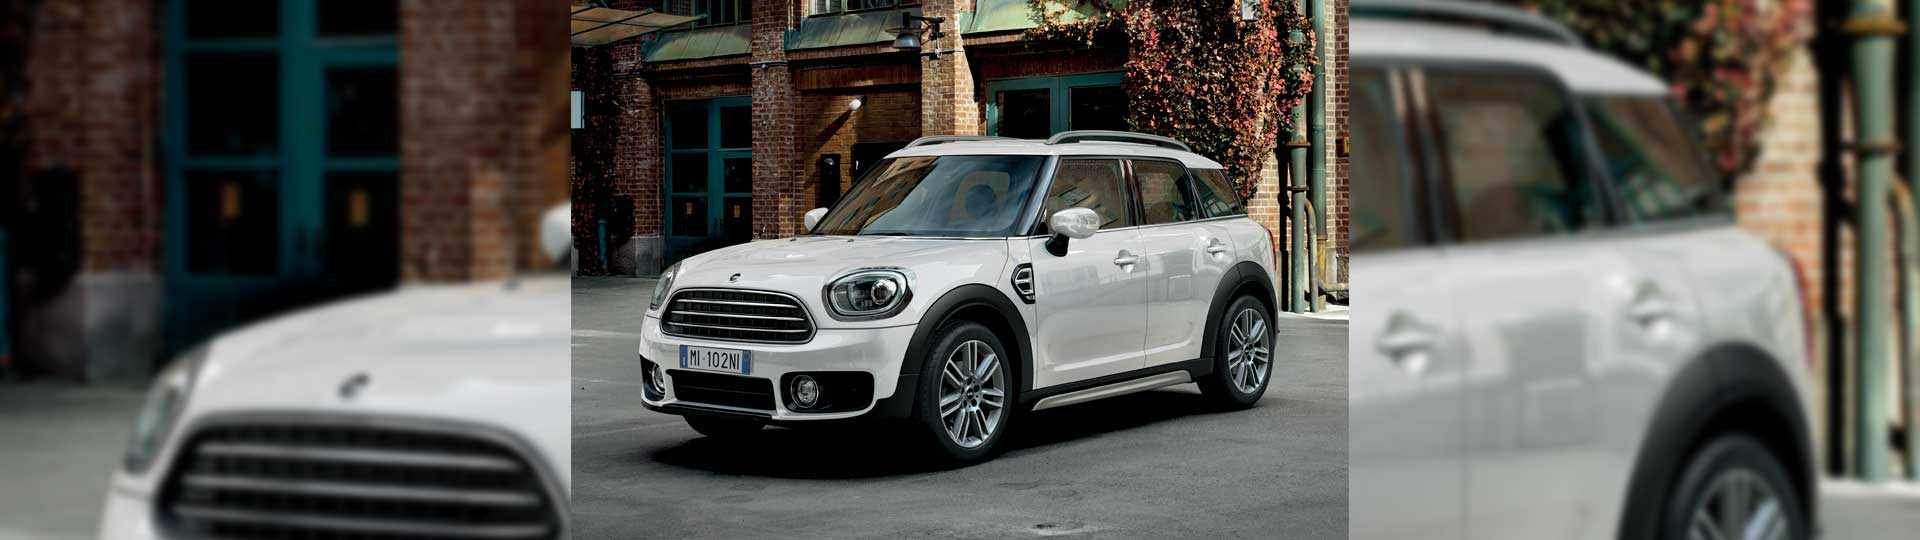 nuova_mini_countryman_baker_street_edition.jpg